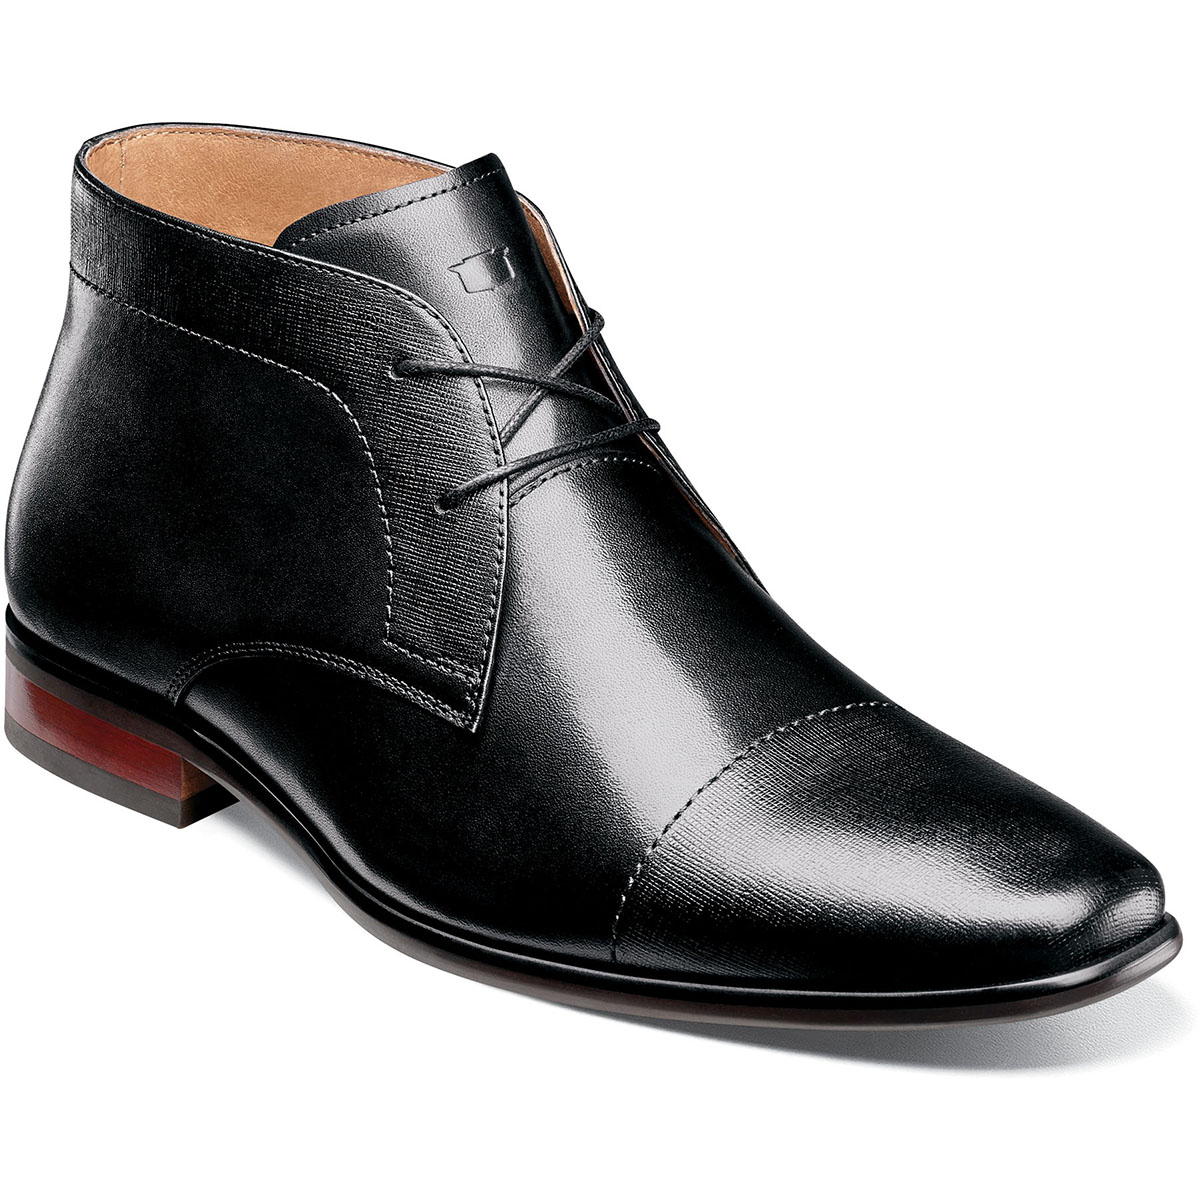 Postino Chukka Boot   in 黑色 for $1290.00